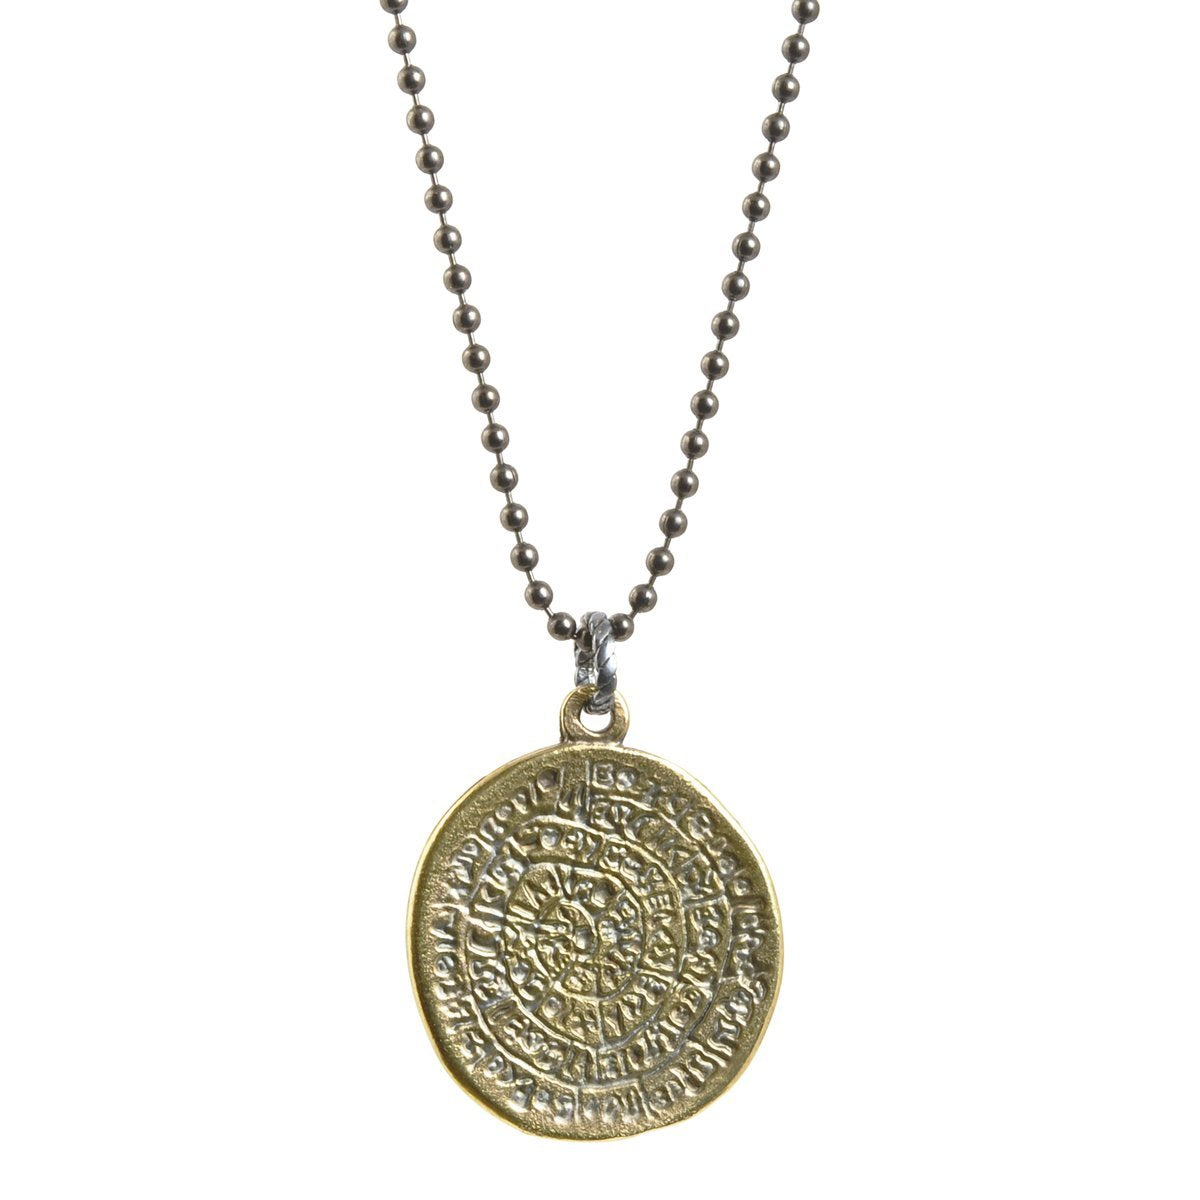 Finished Jewelry-Simple-Phaistos Disc Antique Bronze Pendant Ball Chain Necklace